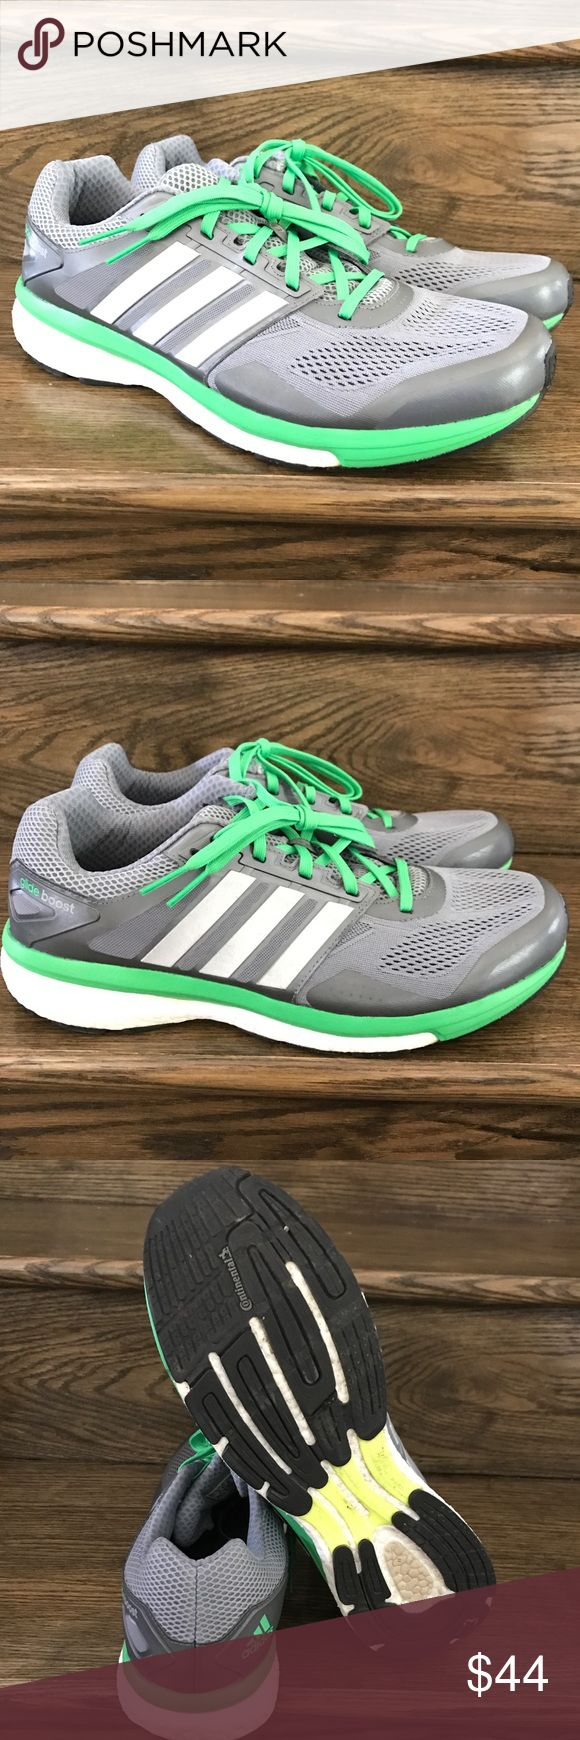 Mens Adidas Glide Boost Grey/Green Running Shoes Size: 12.5  Condition:8.5/10 adidas Shoes Sneakers